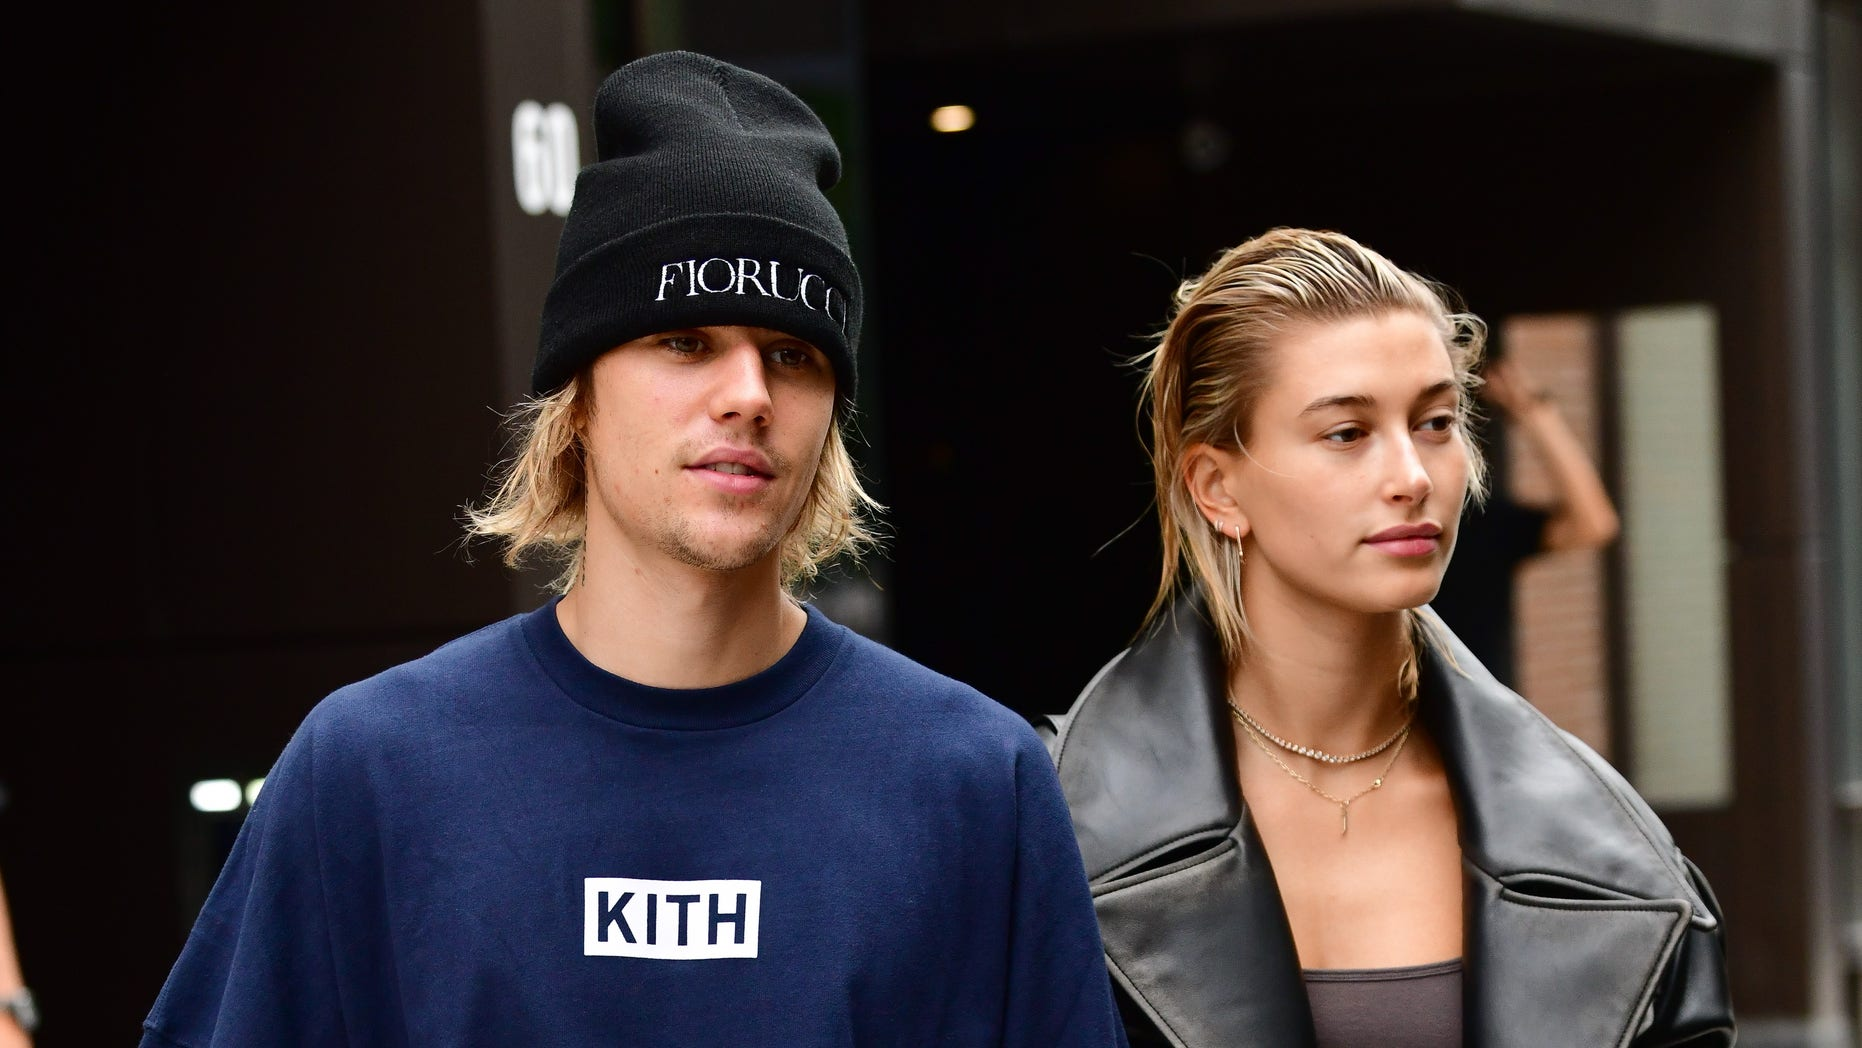 'Celibate' Justin Bieber saved himself for his wedding night